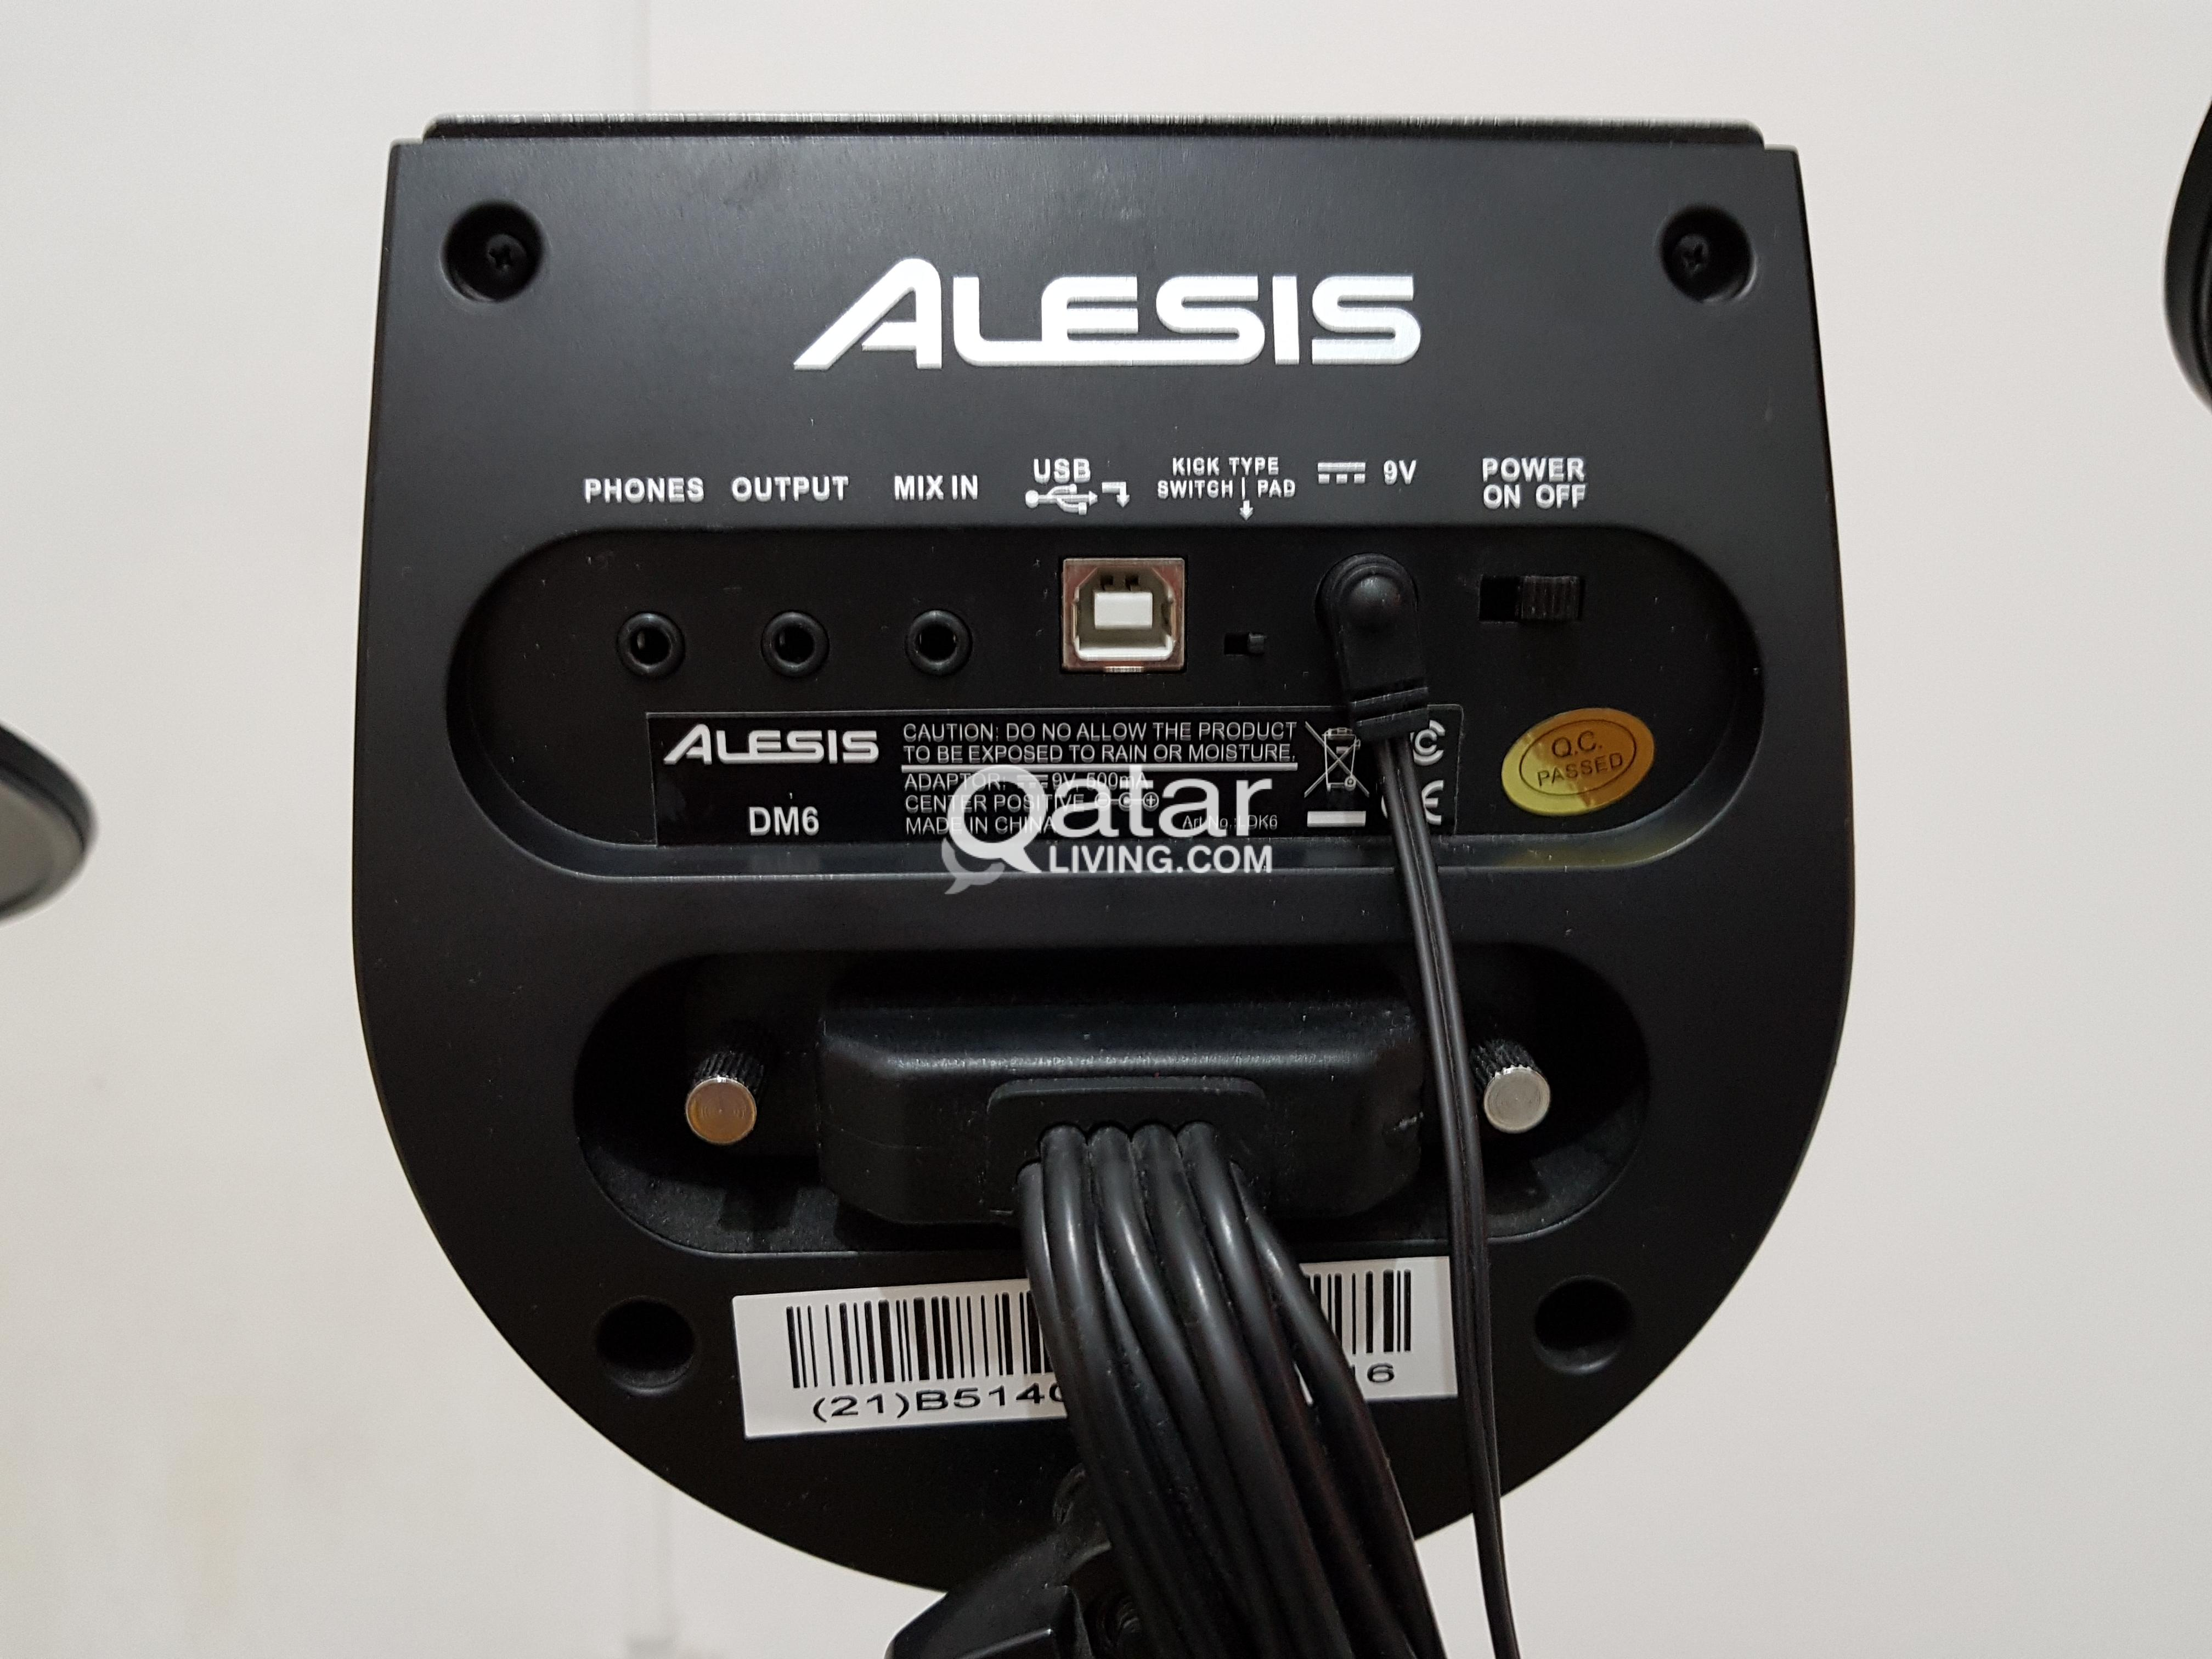 Alesis DM6 Drum Kit with Amplifier and Drum Throne!!! | Qatar Living